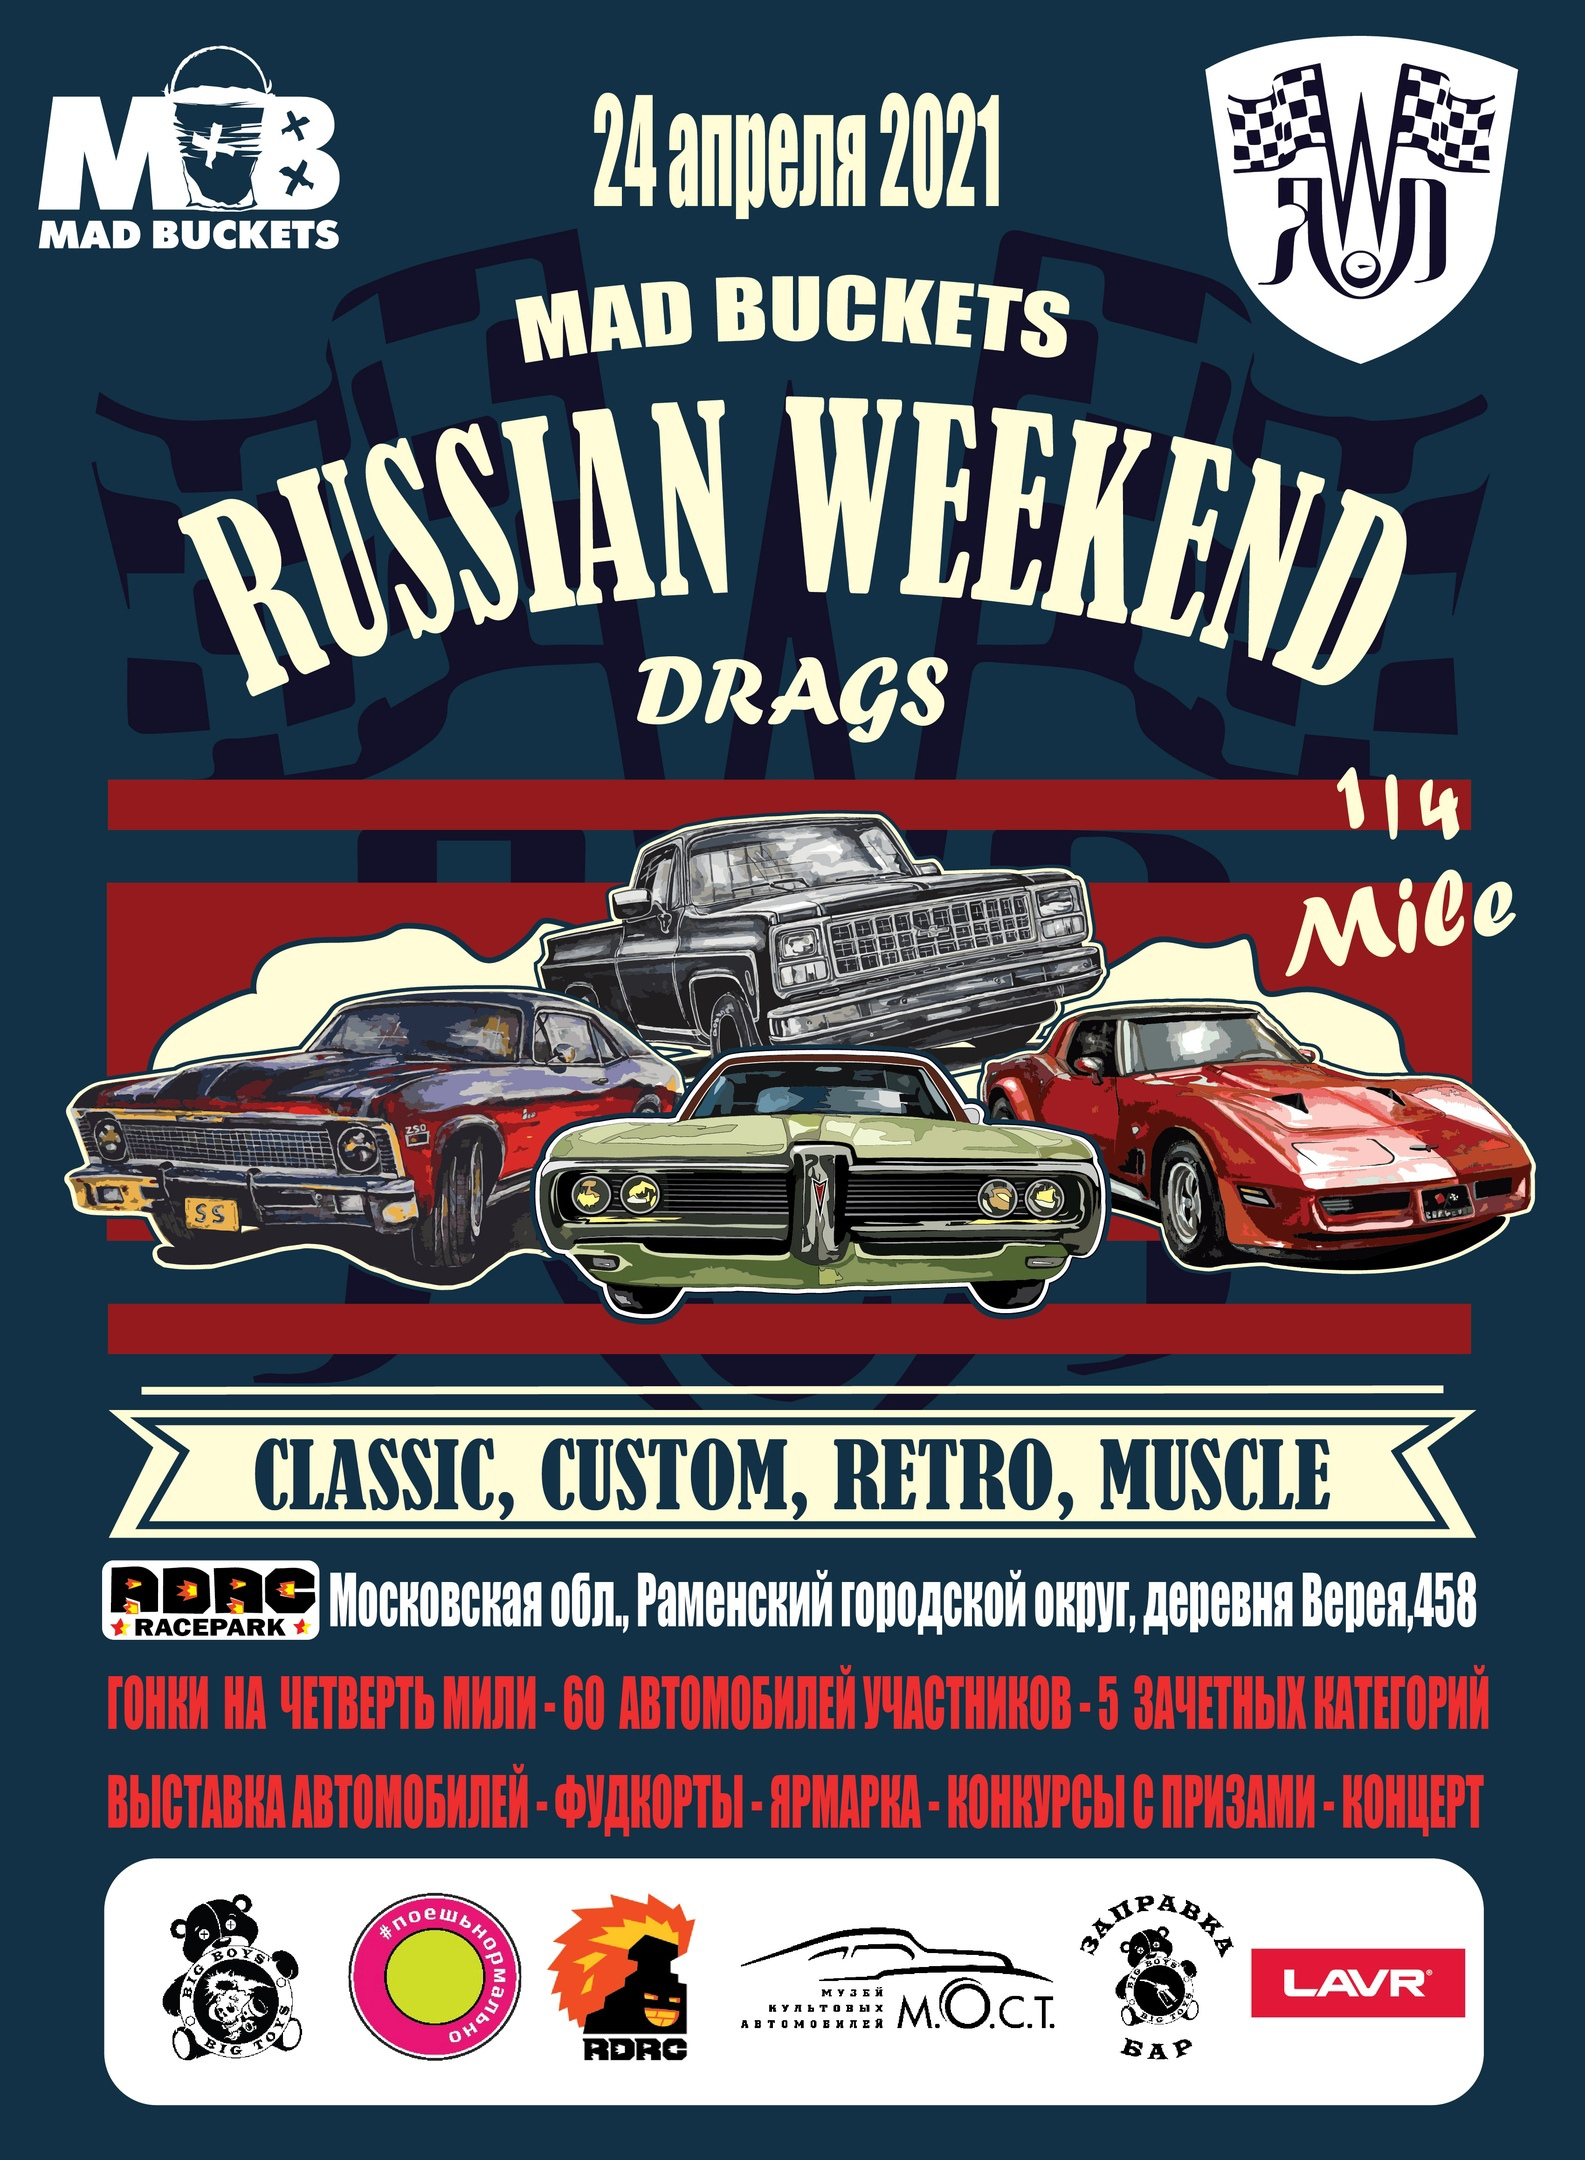 24.04 Russian Weekend Drags!